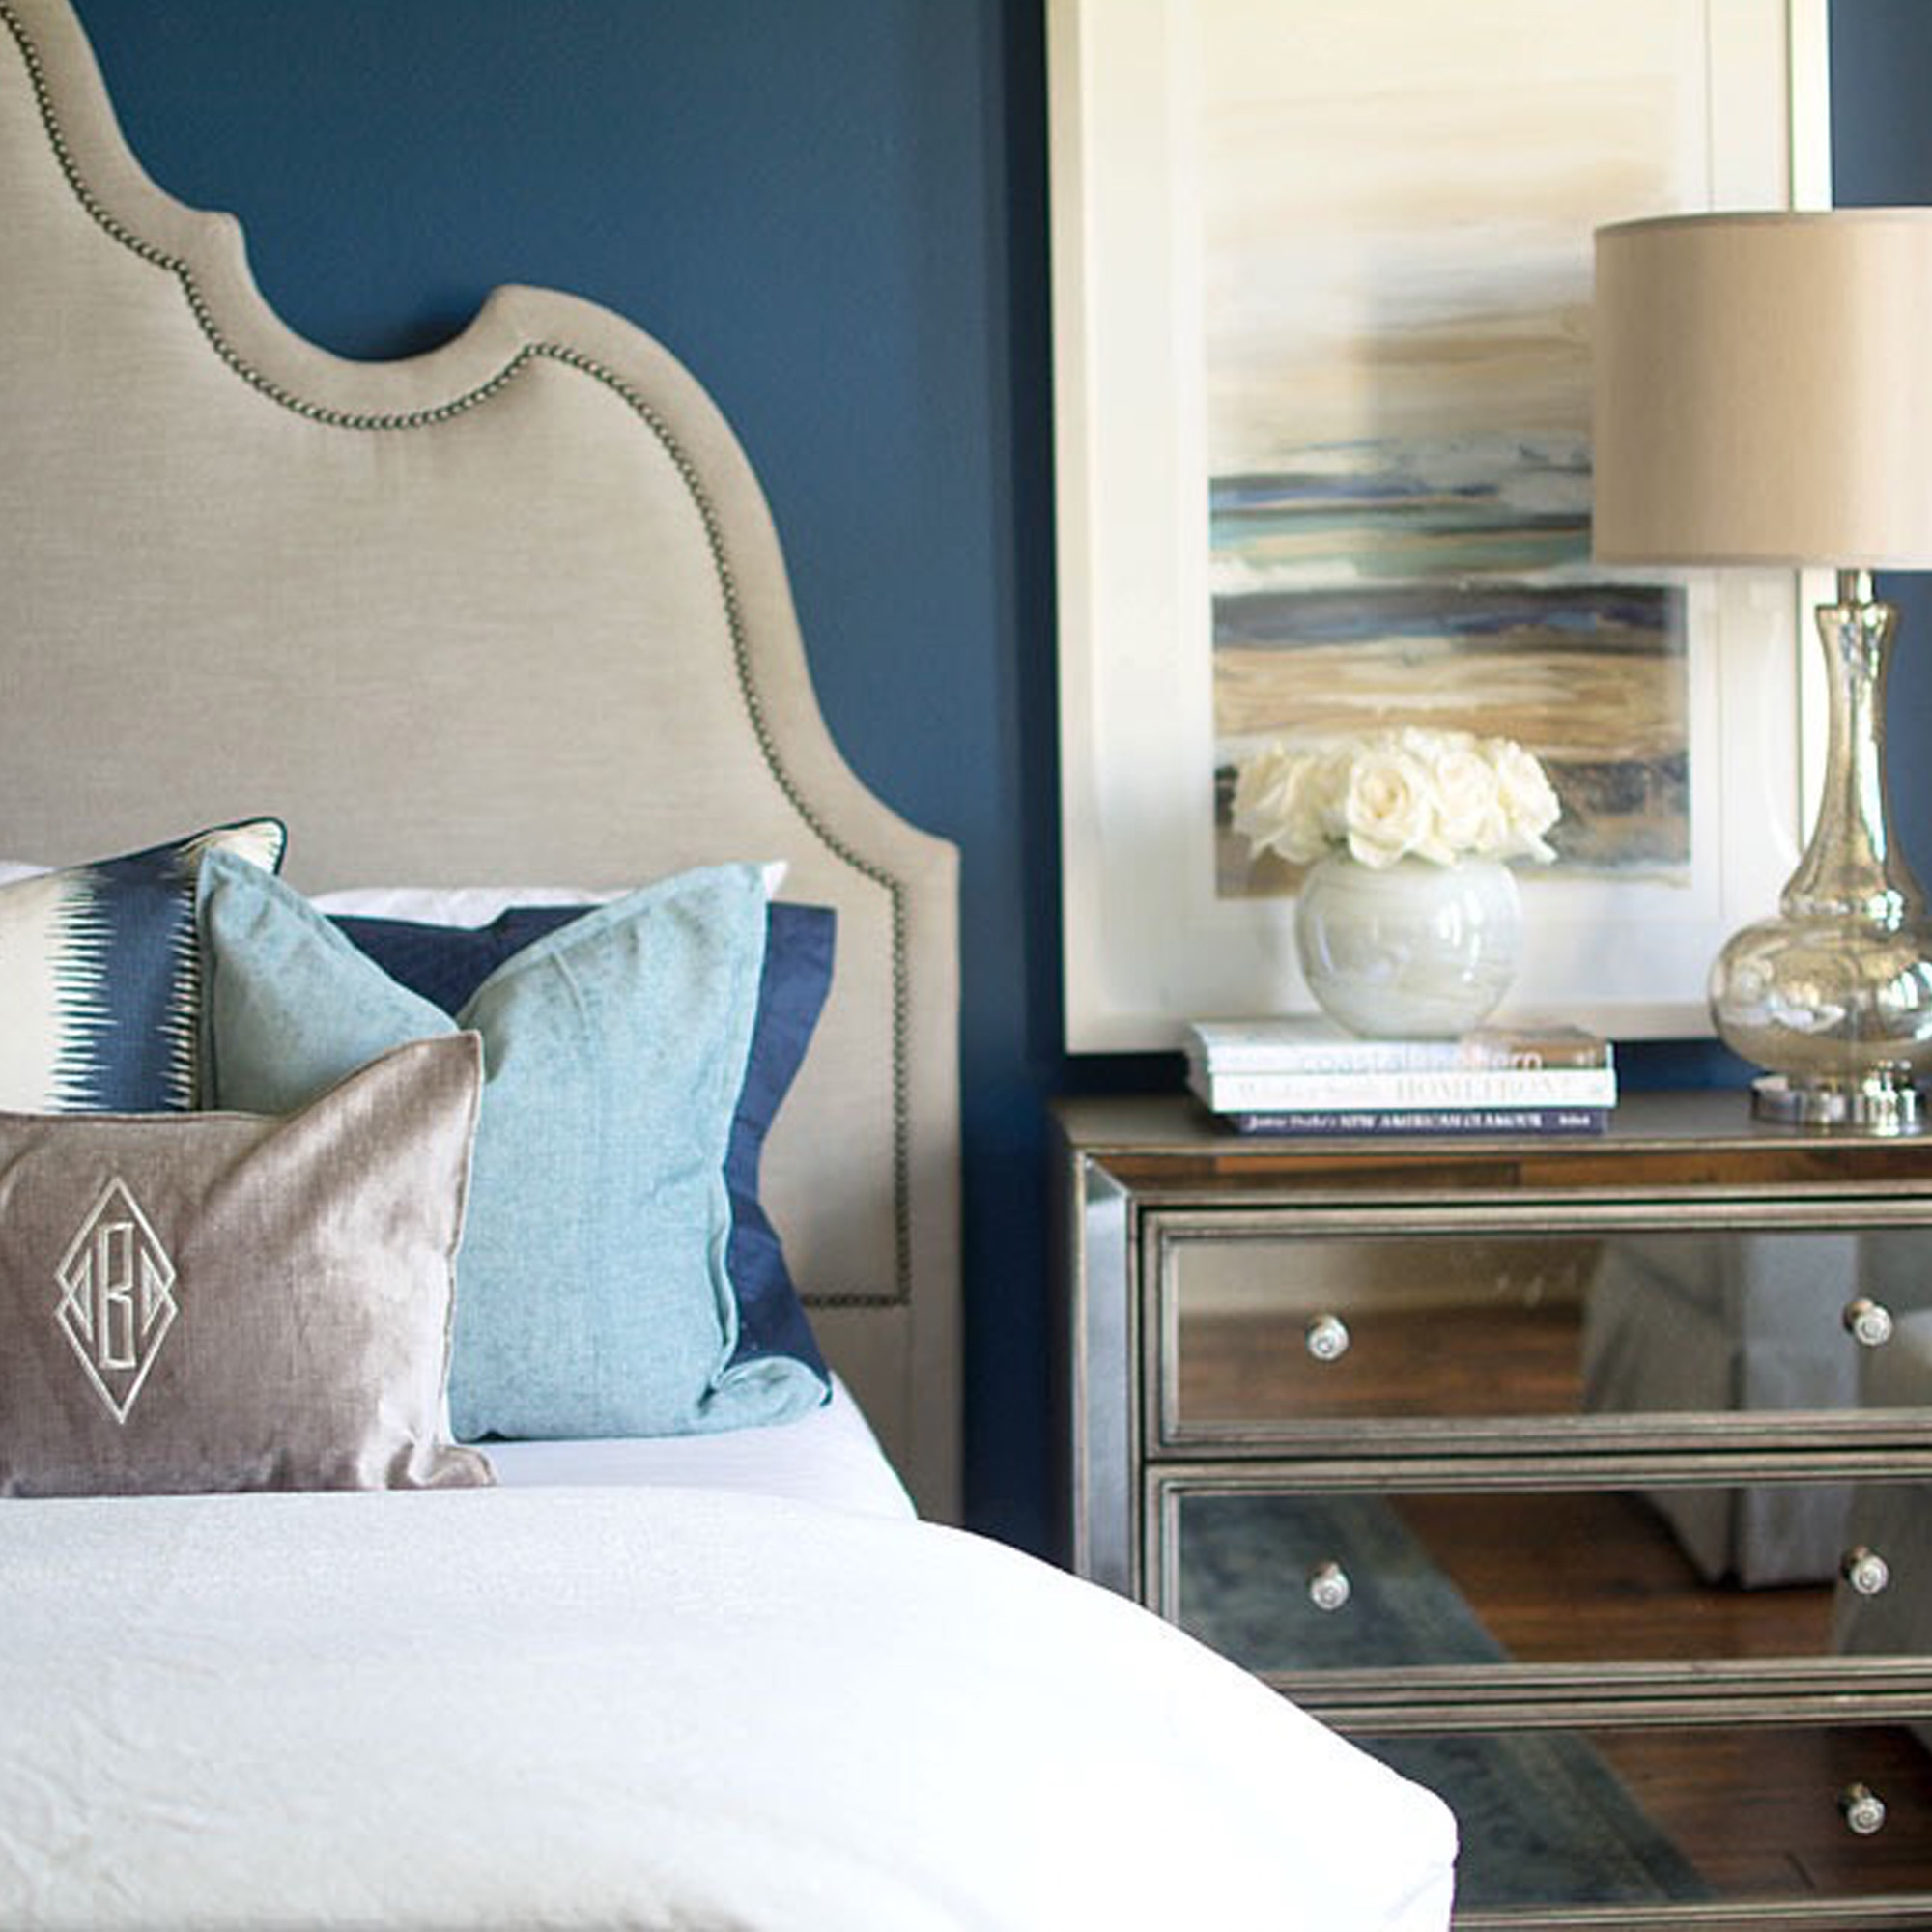 How To Pick The Perfect Bedside Table